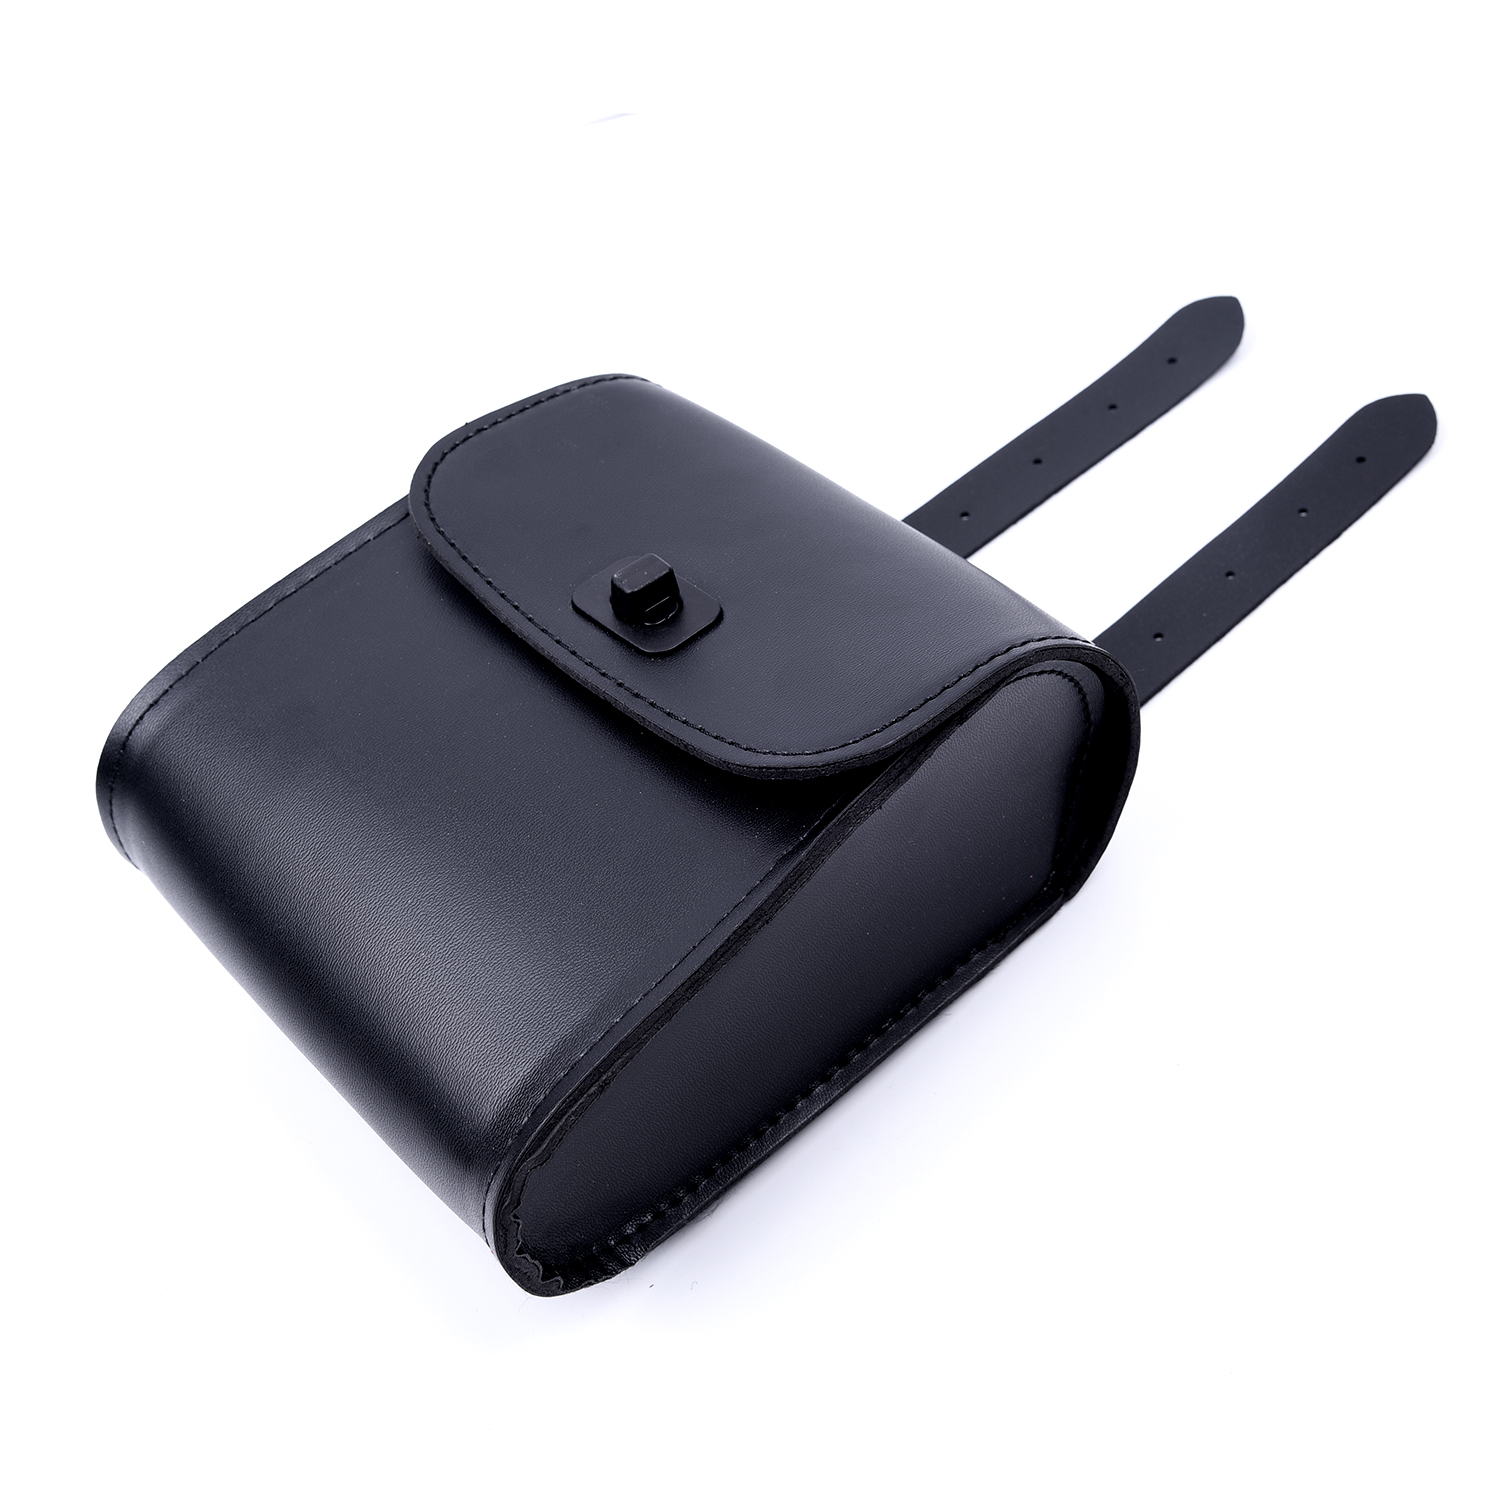 Motorcycle Accessories Saddle Luggage Universal Tool bag MOTORCYCLE BIKE Bag PU Leather black New Arrival